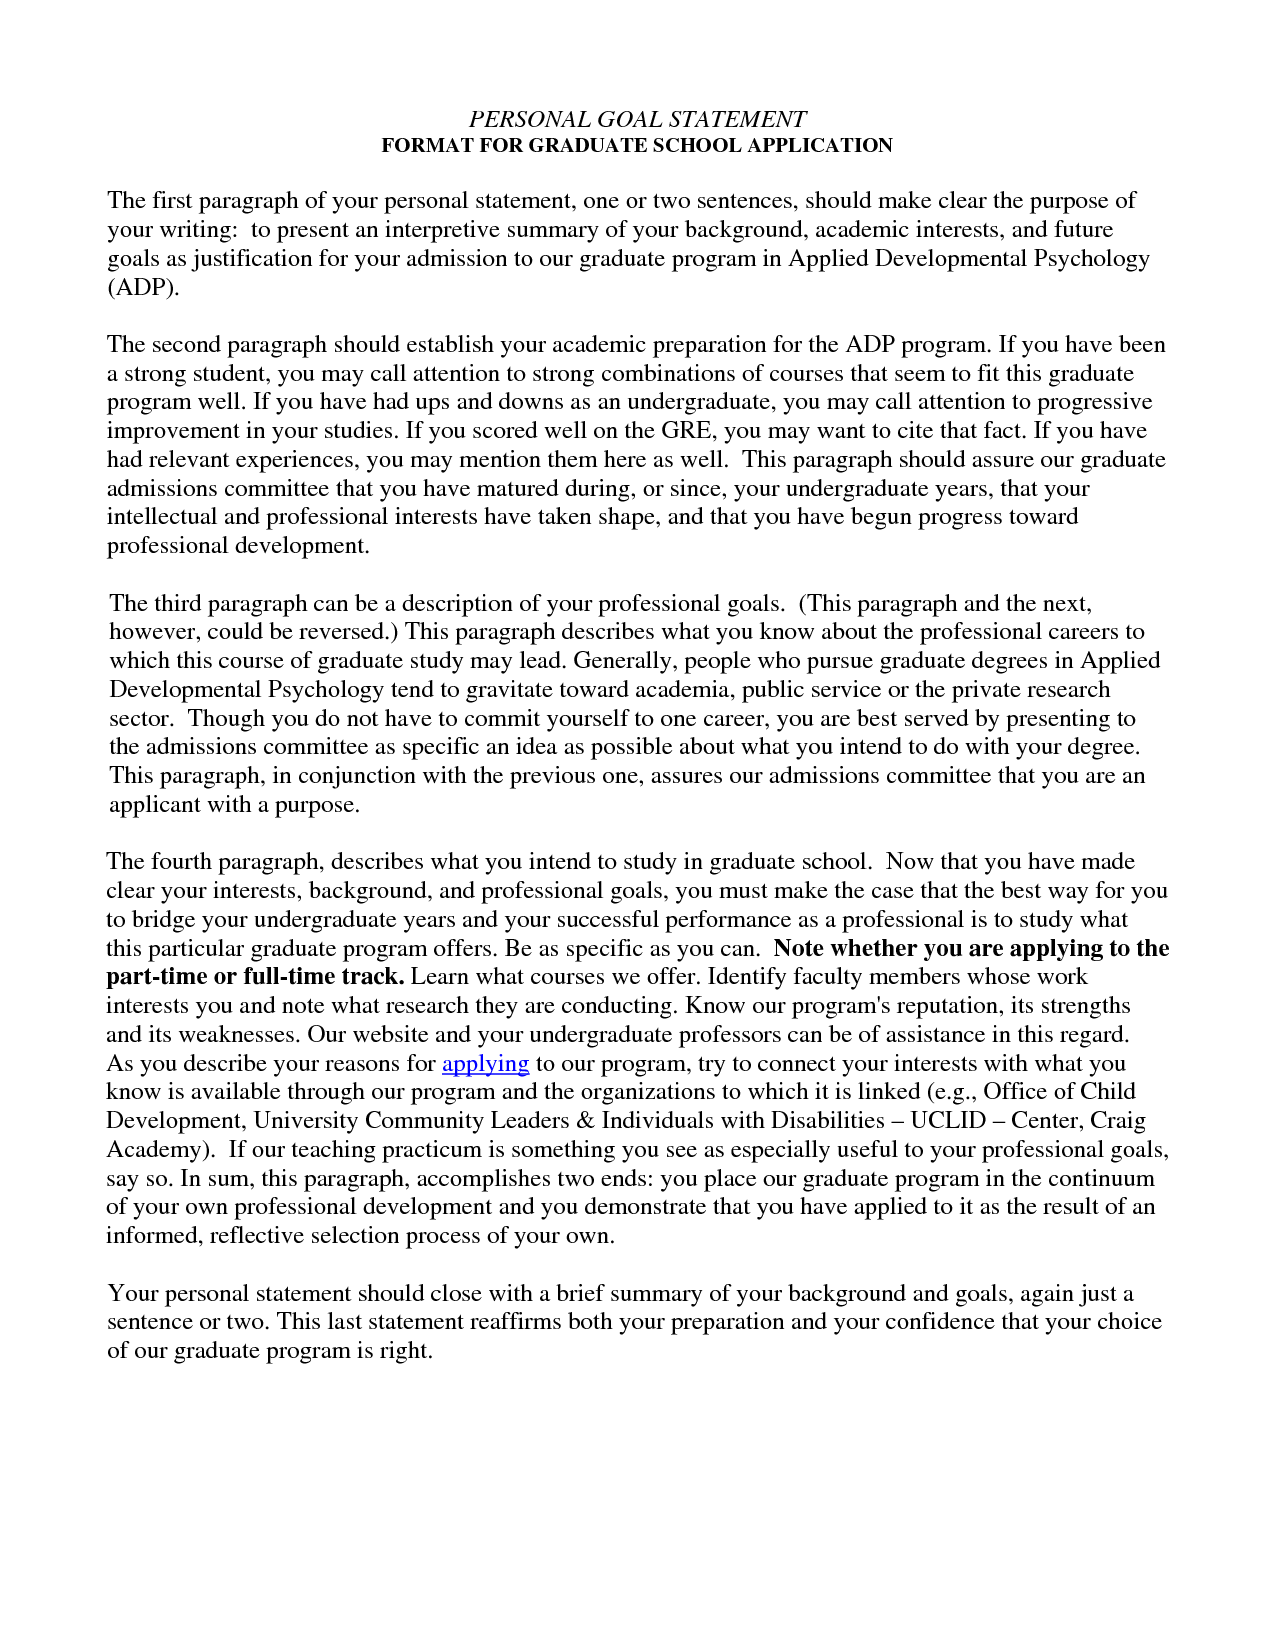 013 Essay Example Personal Formidable Format Narrative For Scholarships Samples Graduate School Full